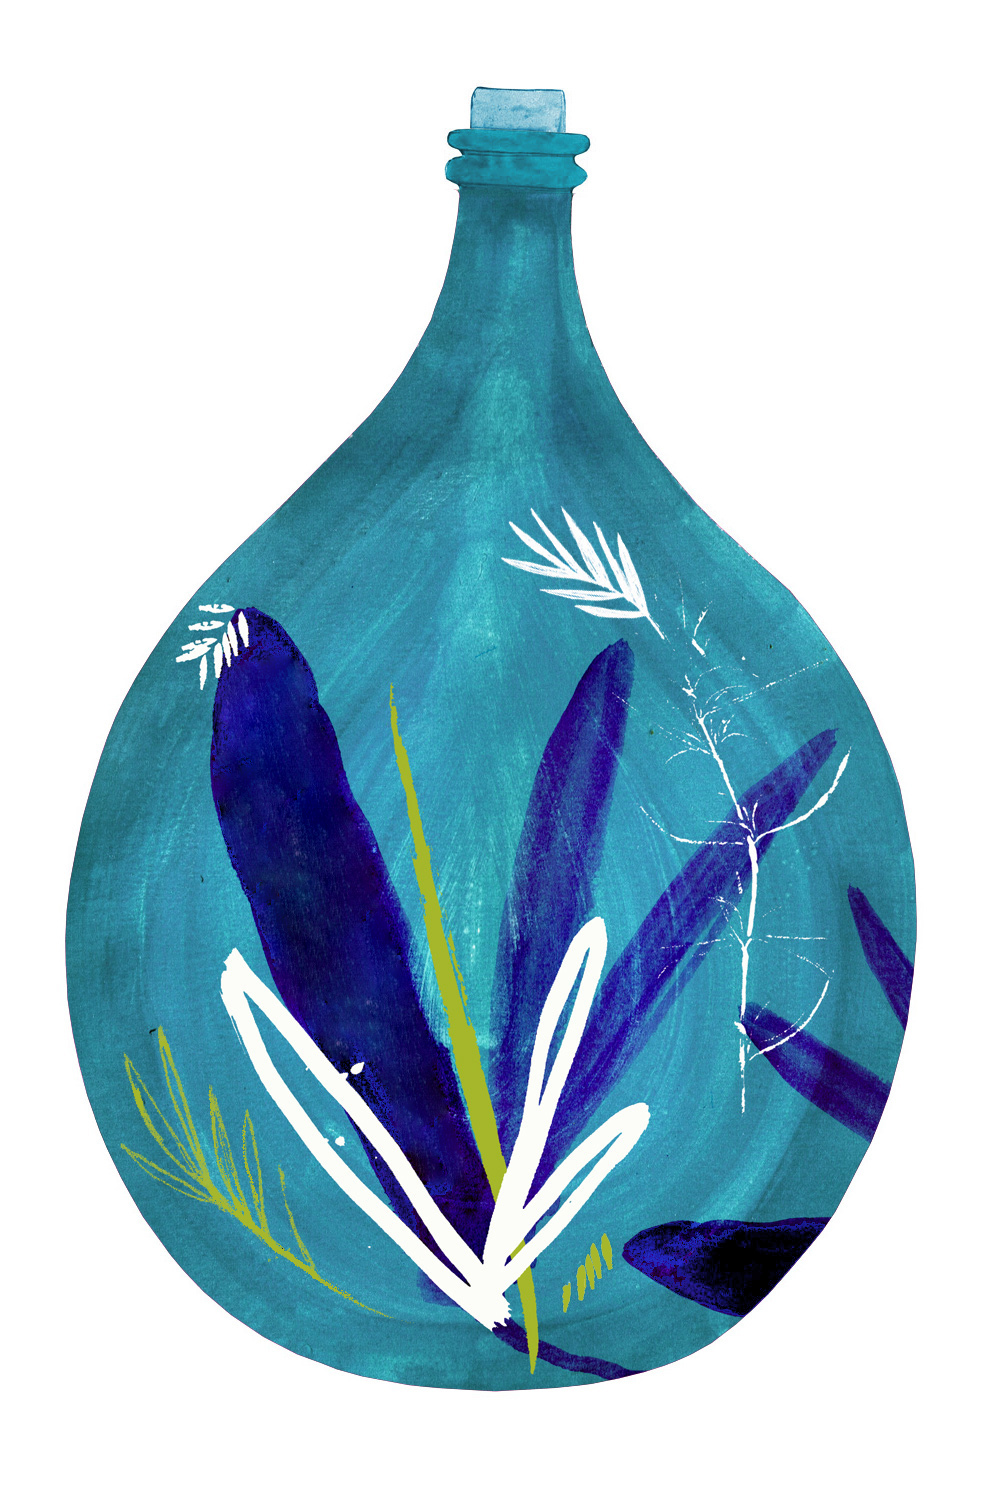 Made For life Organics Blue Demijohn hand painted illustration by Wild Bear Designs